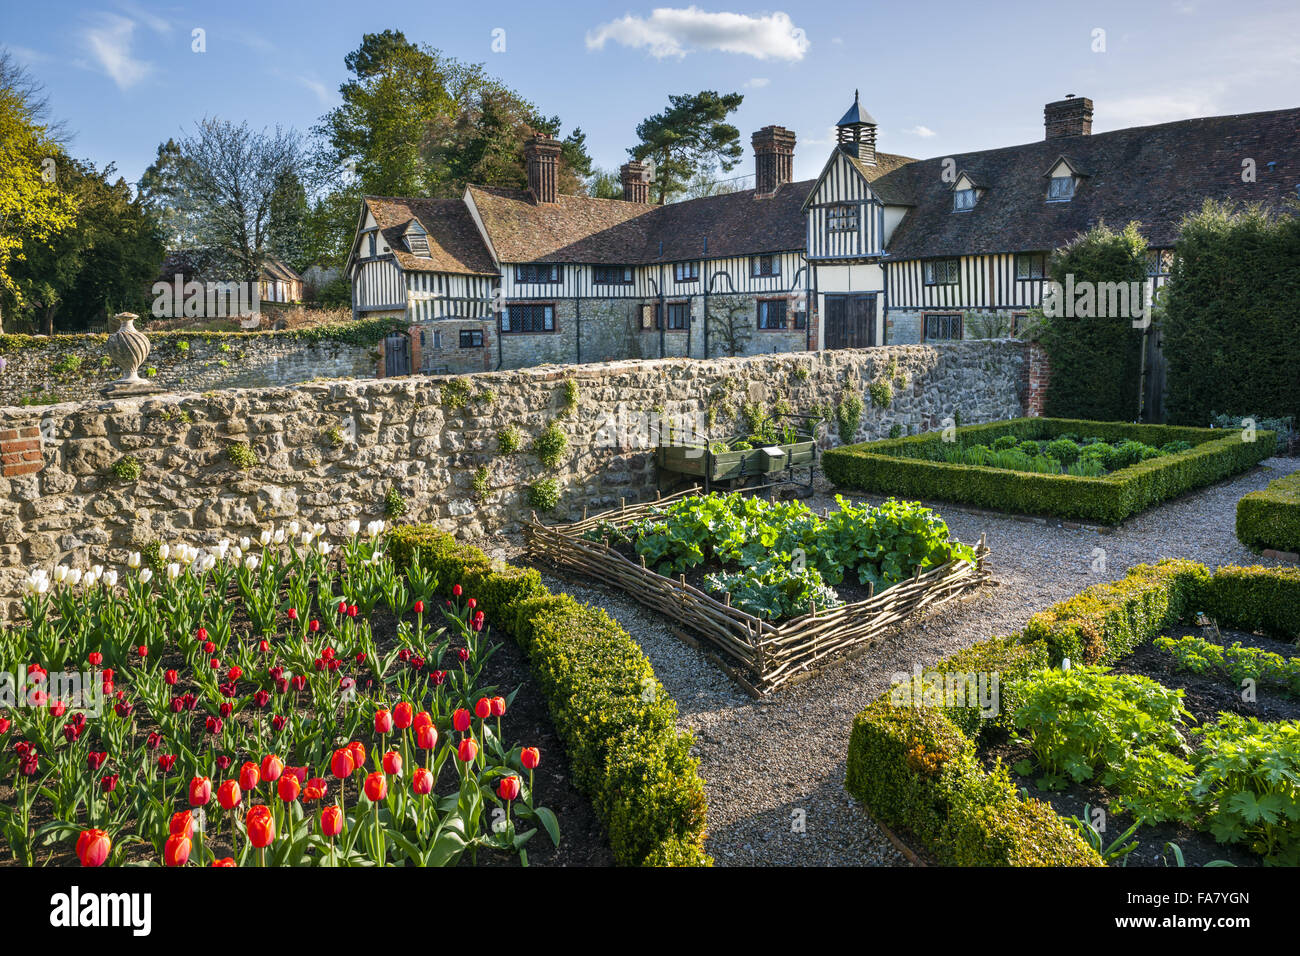 The flower and vegetable garden with the cottages in the background at Ightham Mote, Kent Stock Photo